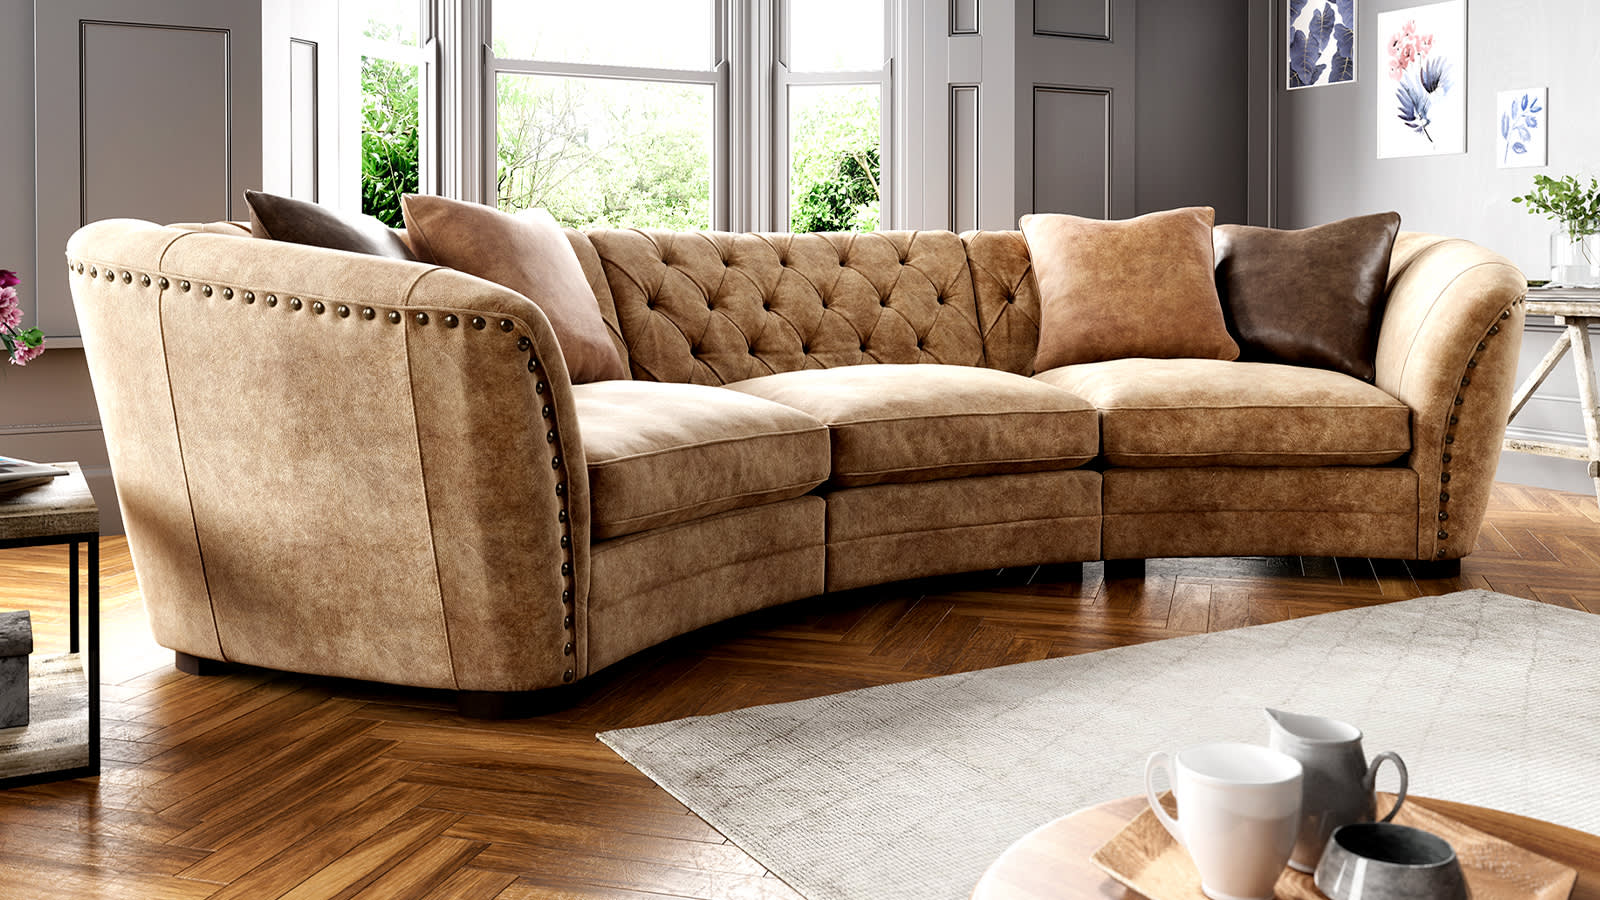 Sofology Bronco brown leather sofa